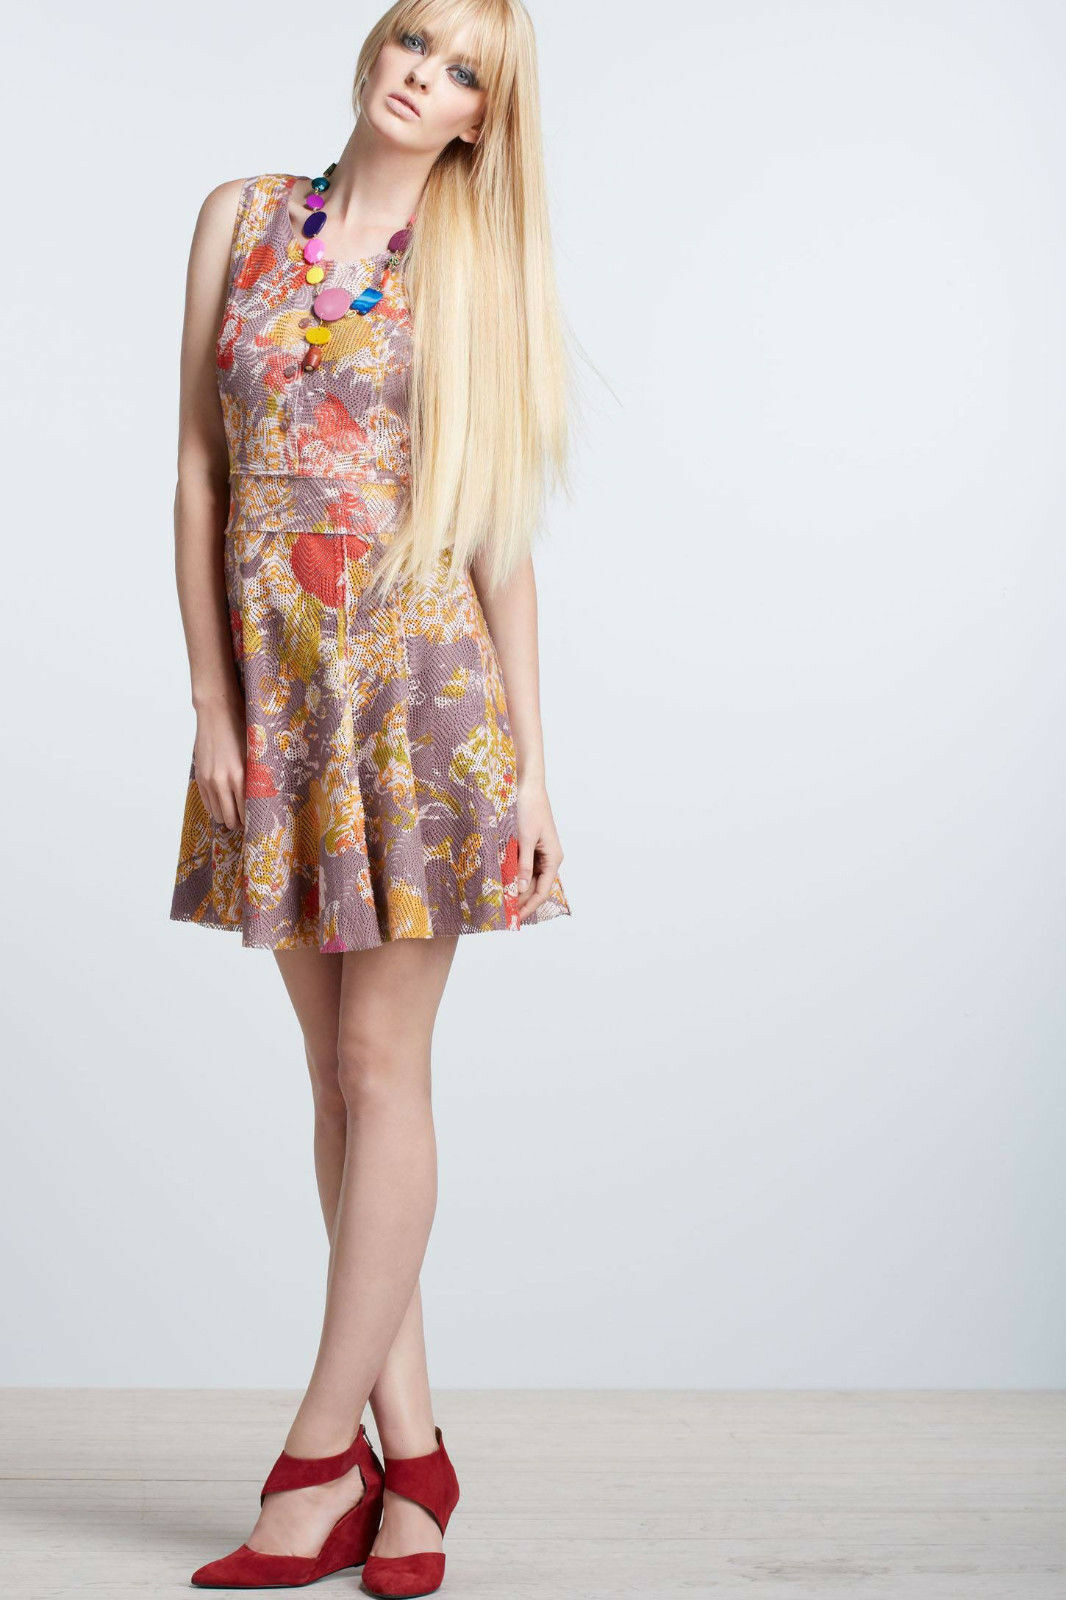 New New New  Anthropologie Gregory   Smoky Lilies Lace Dress  SOLD OUT  288  Size 4 bc109b